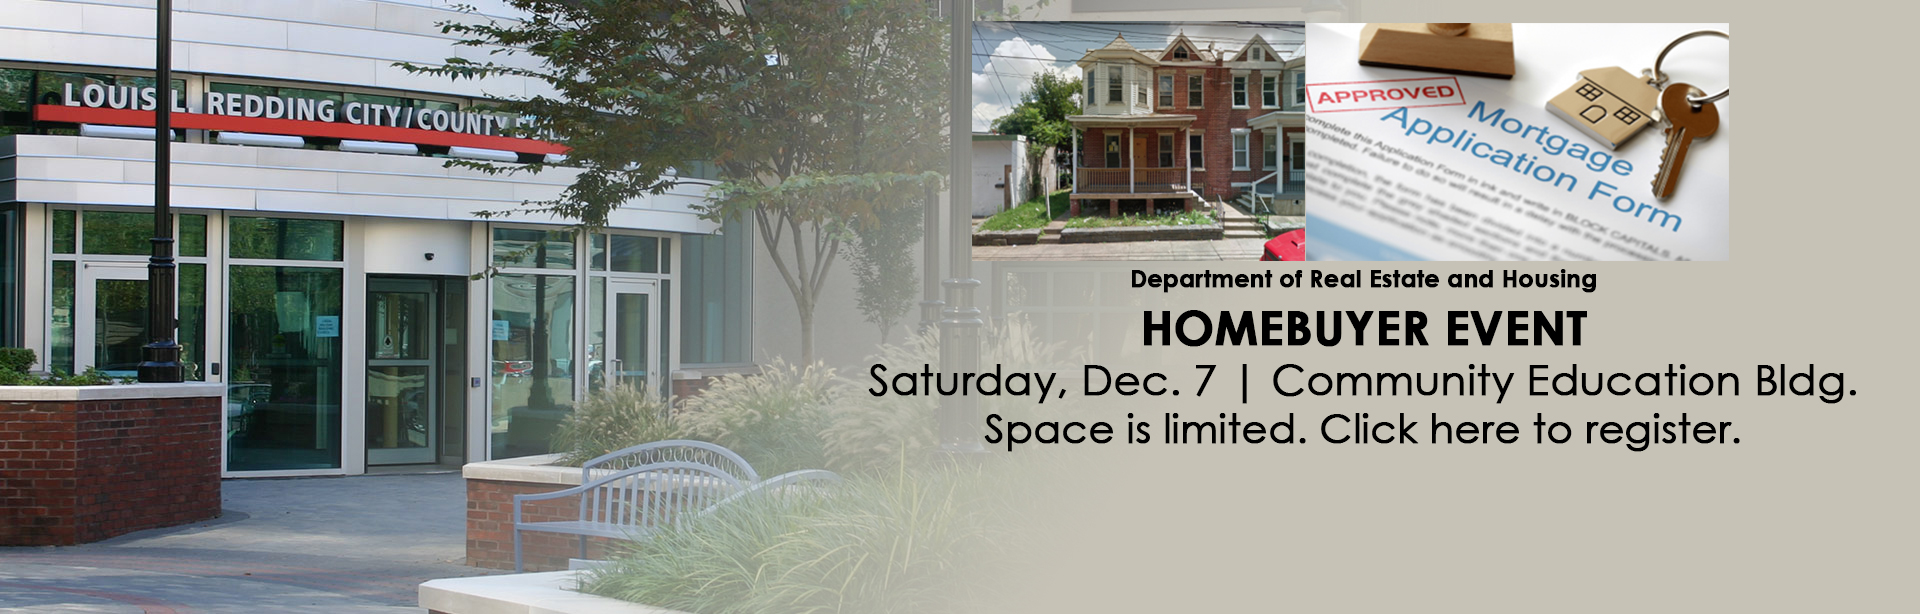 Register for the Homebuyer Event on Saturday, August 24.